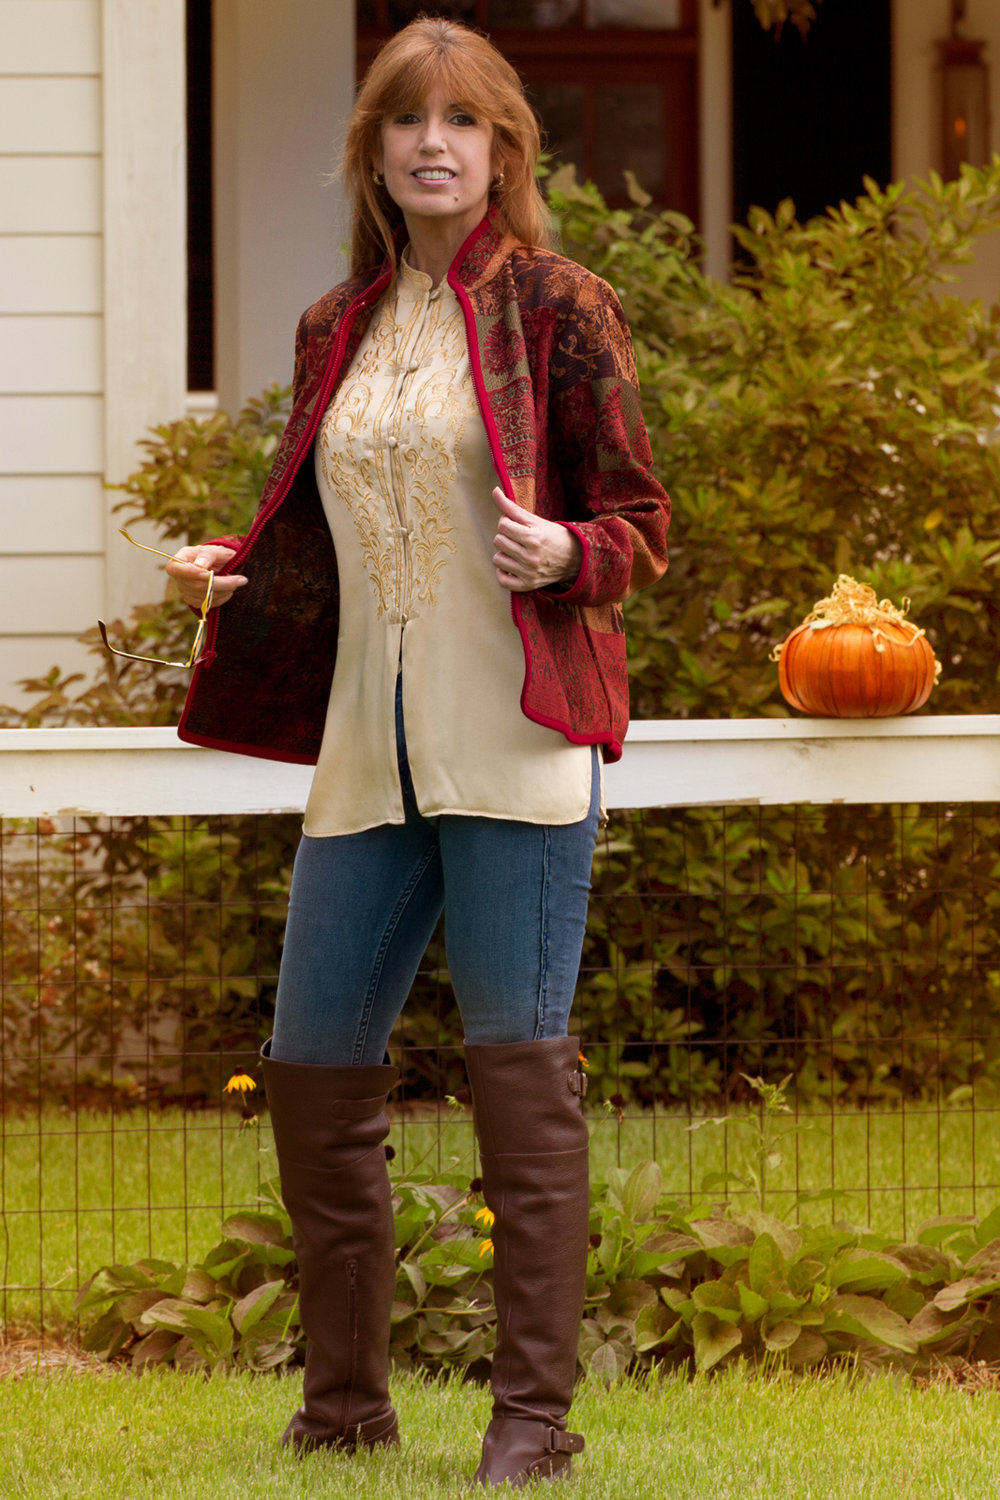 Low heels, Thigh High boots with Whistle River Trading and their Shenandoah Zip-Front Jacket